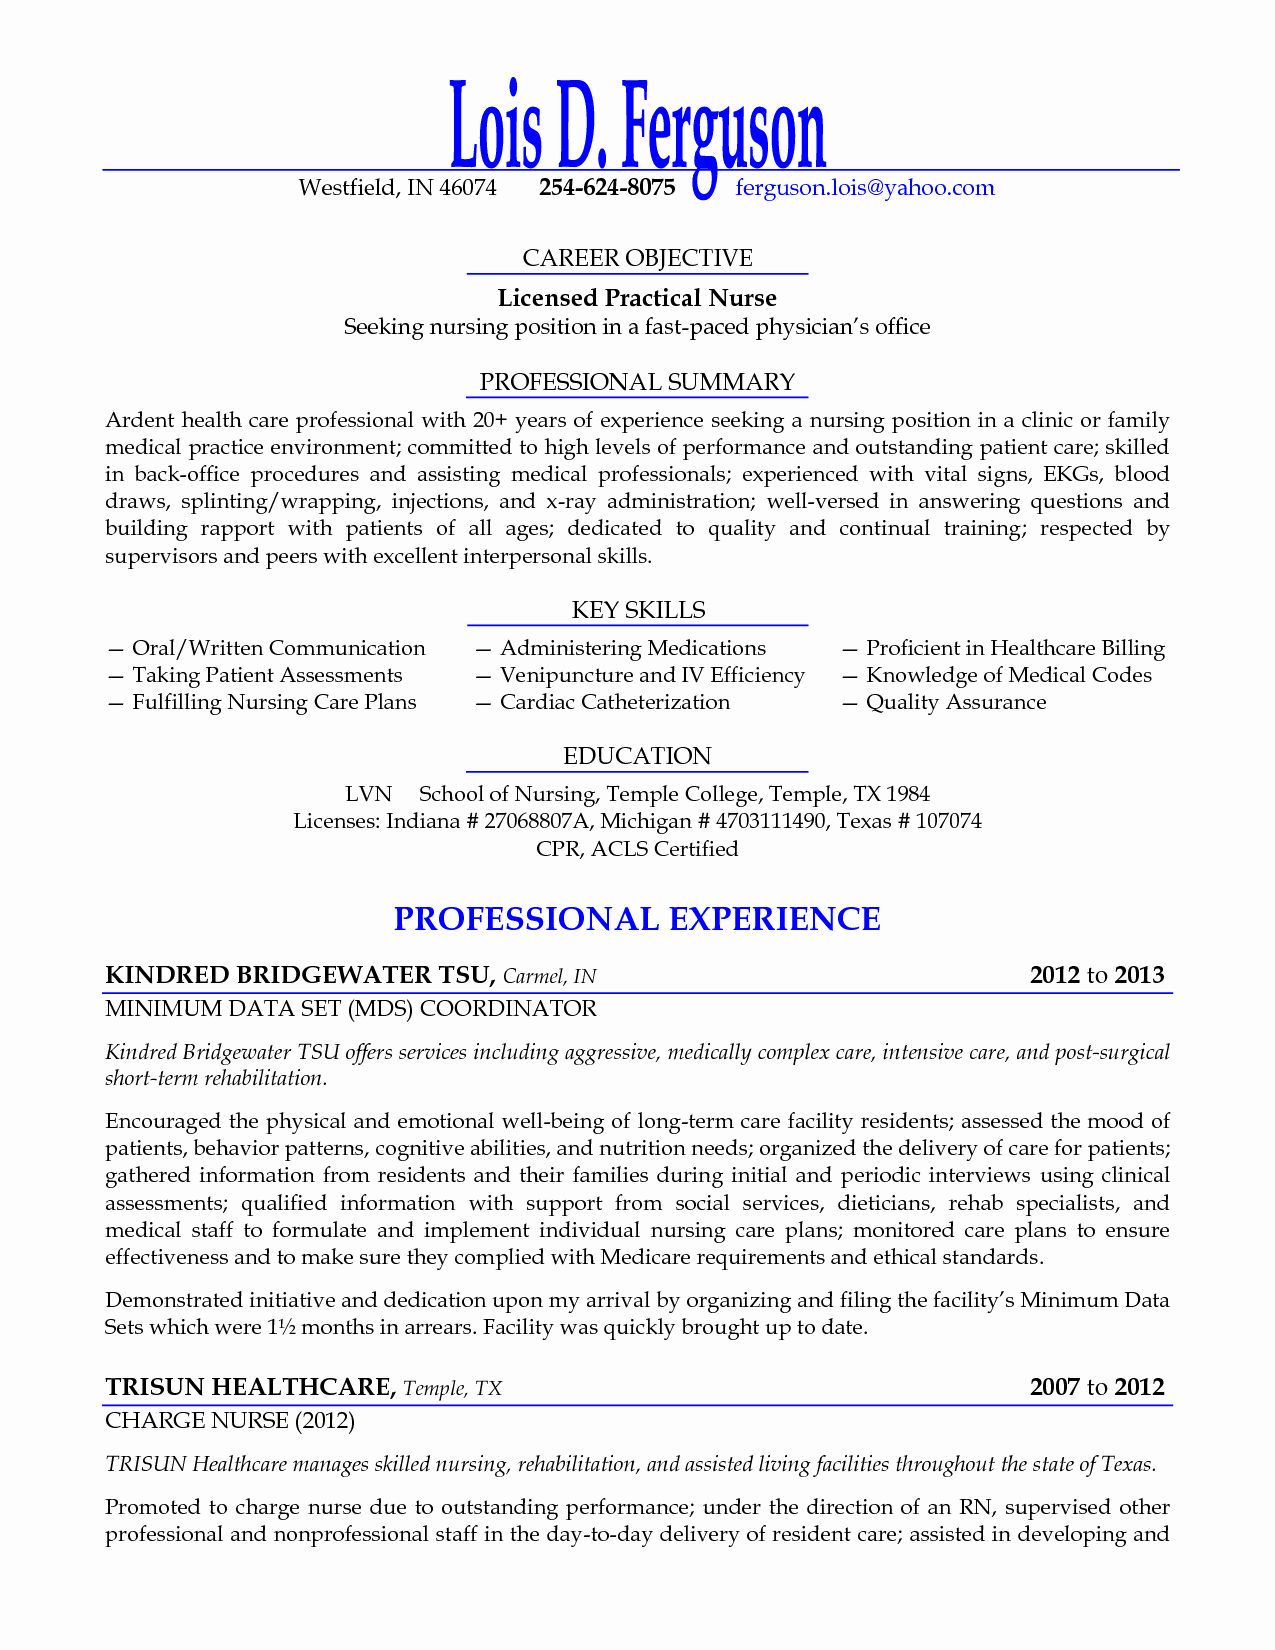 Licensed Practical Nurse Seeking Nursing Position Resume